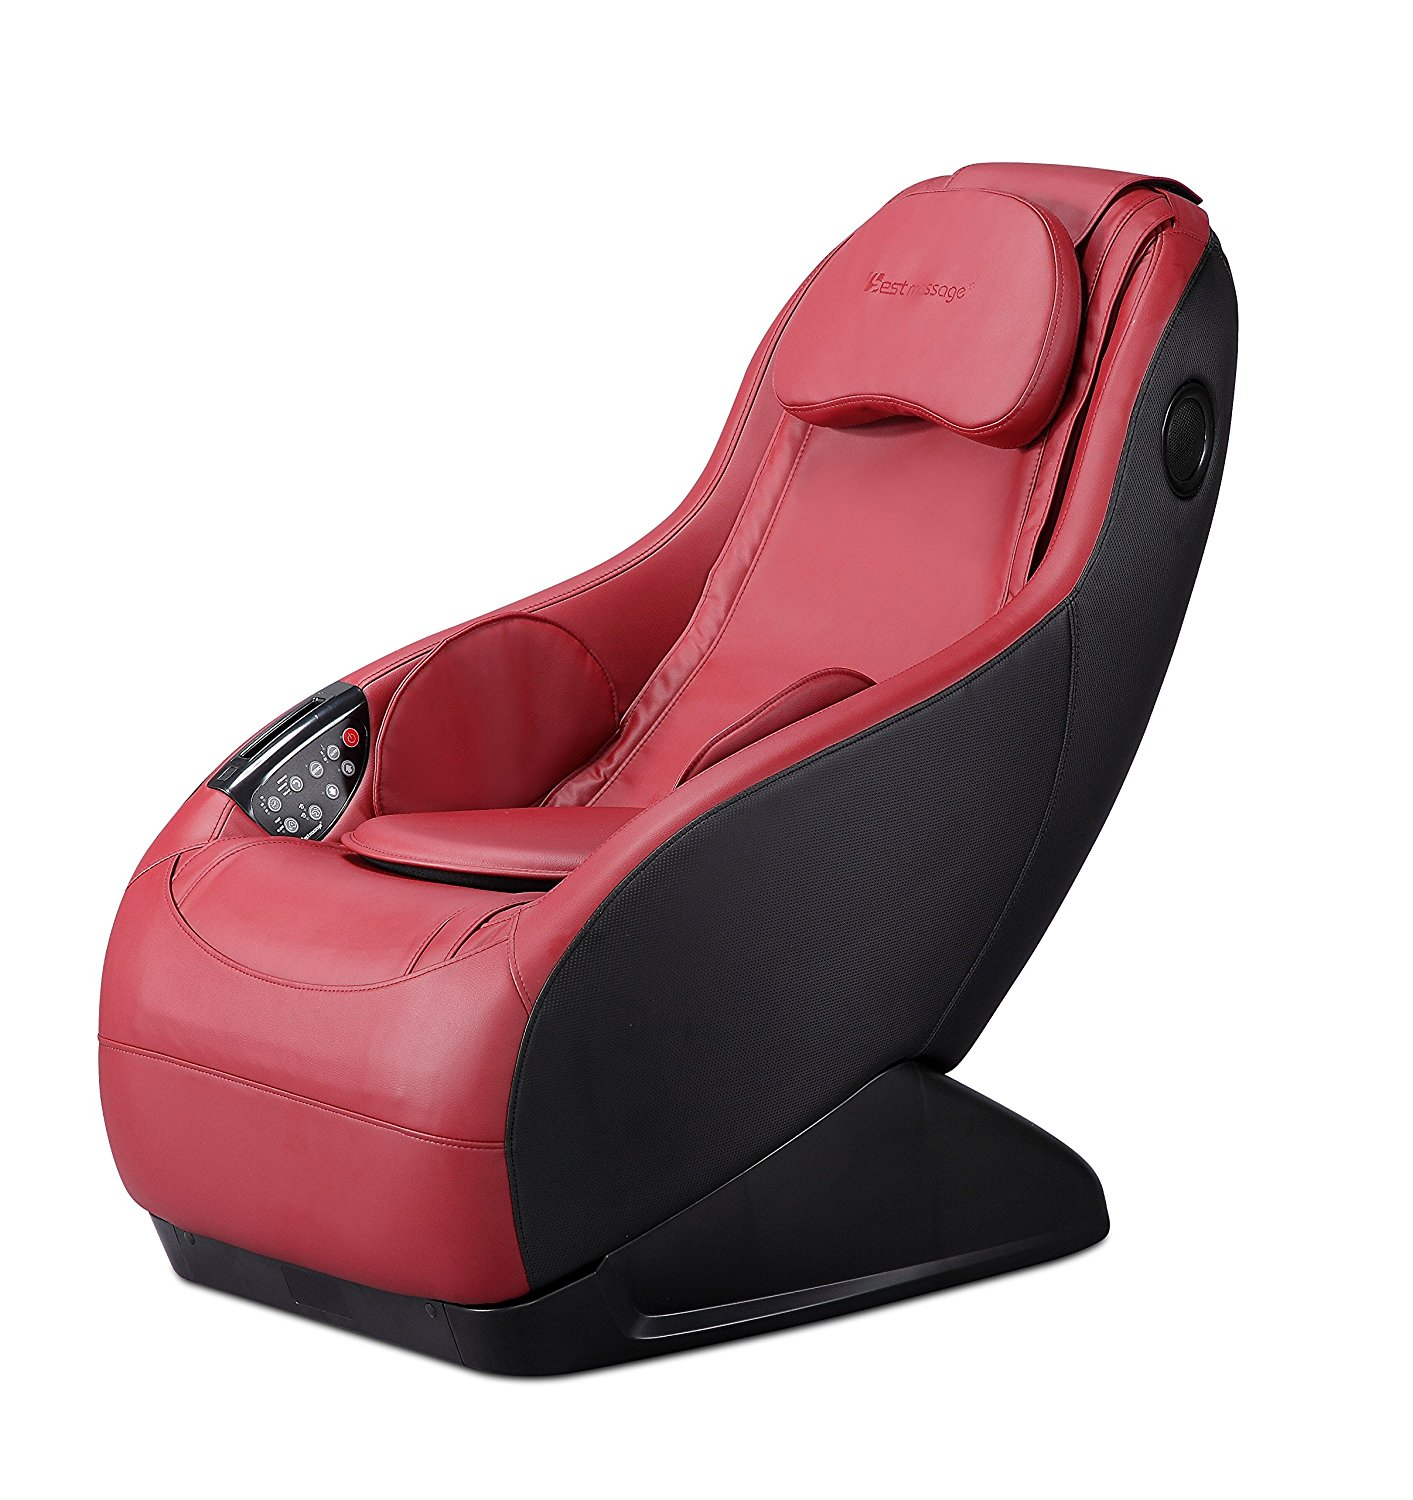 Bestmassage Full Body Gaming Shiatsu Massage Chair Recliner With Heat And  Lon.